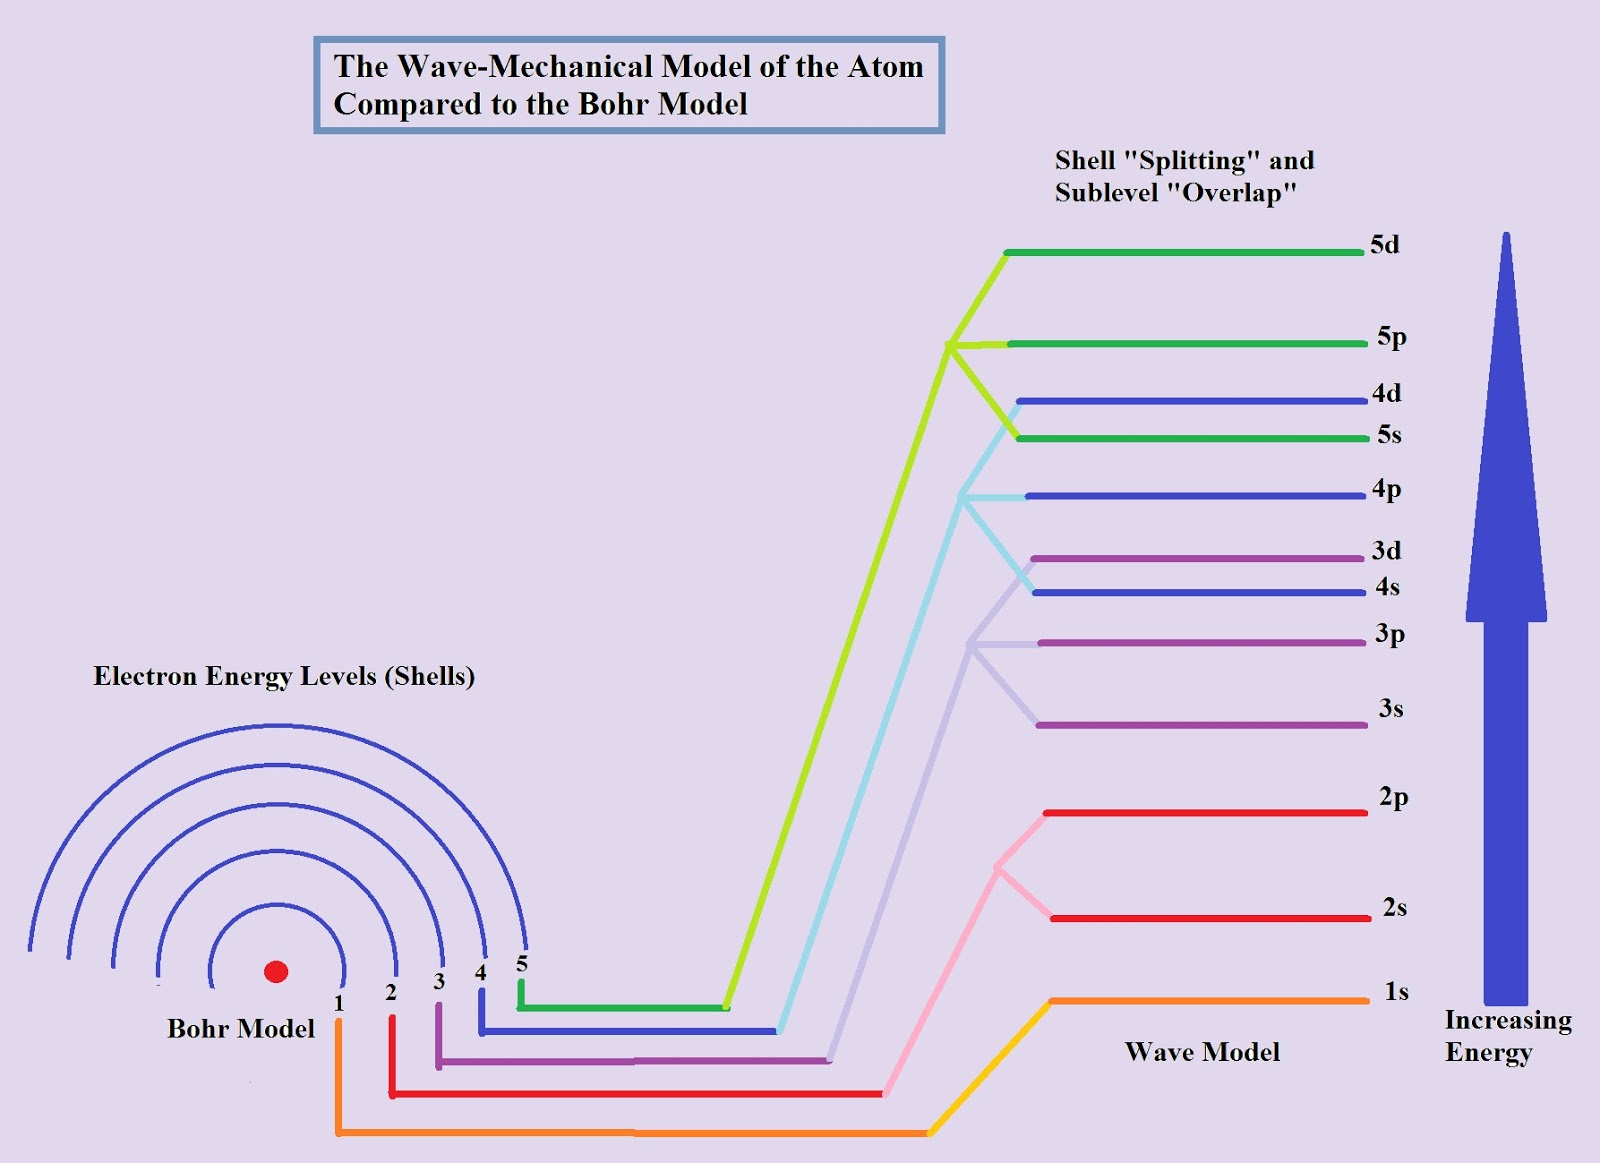 Mechanical Wave Diagram Genie Pro Garage Door Opener Wiring Electron Arrangement And The Model Learning Note Left Click On To Display A Larger Image Excludes Principal Energy Levels 6 7 Which Contain F Sublevels